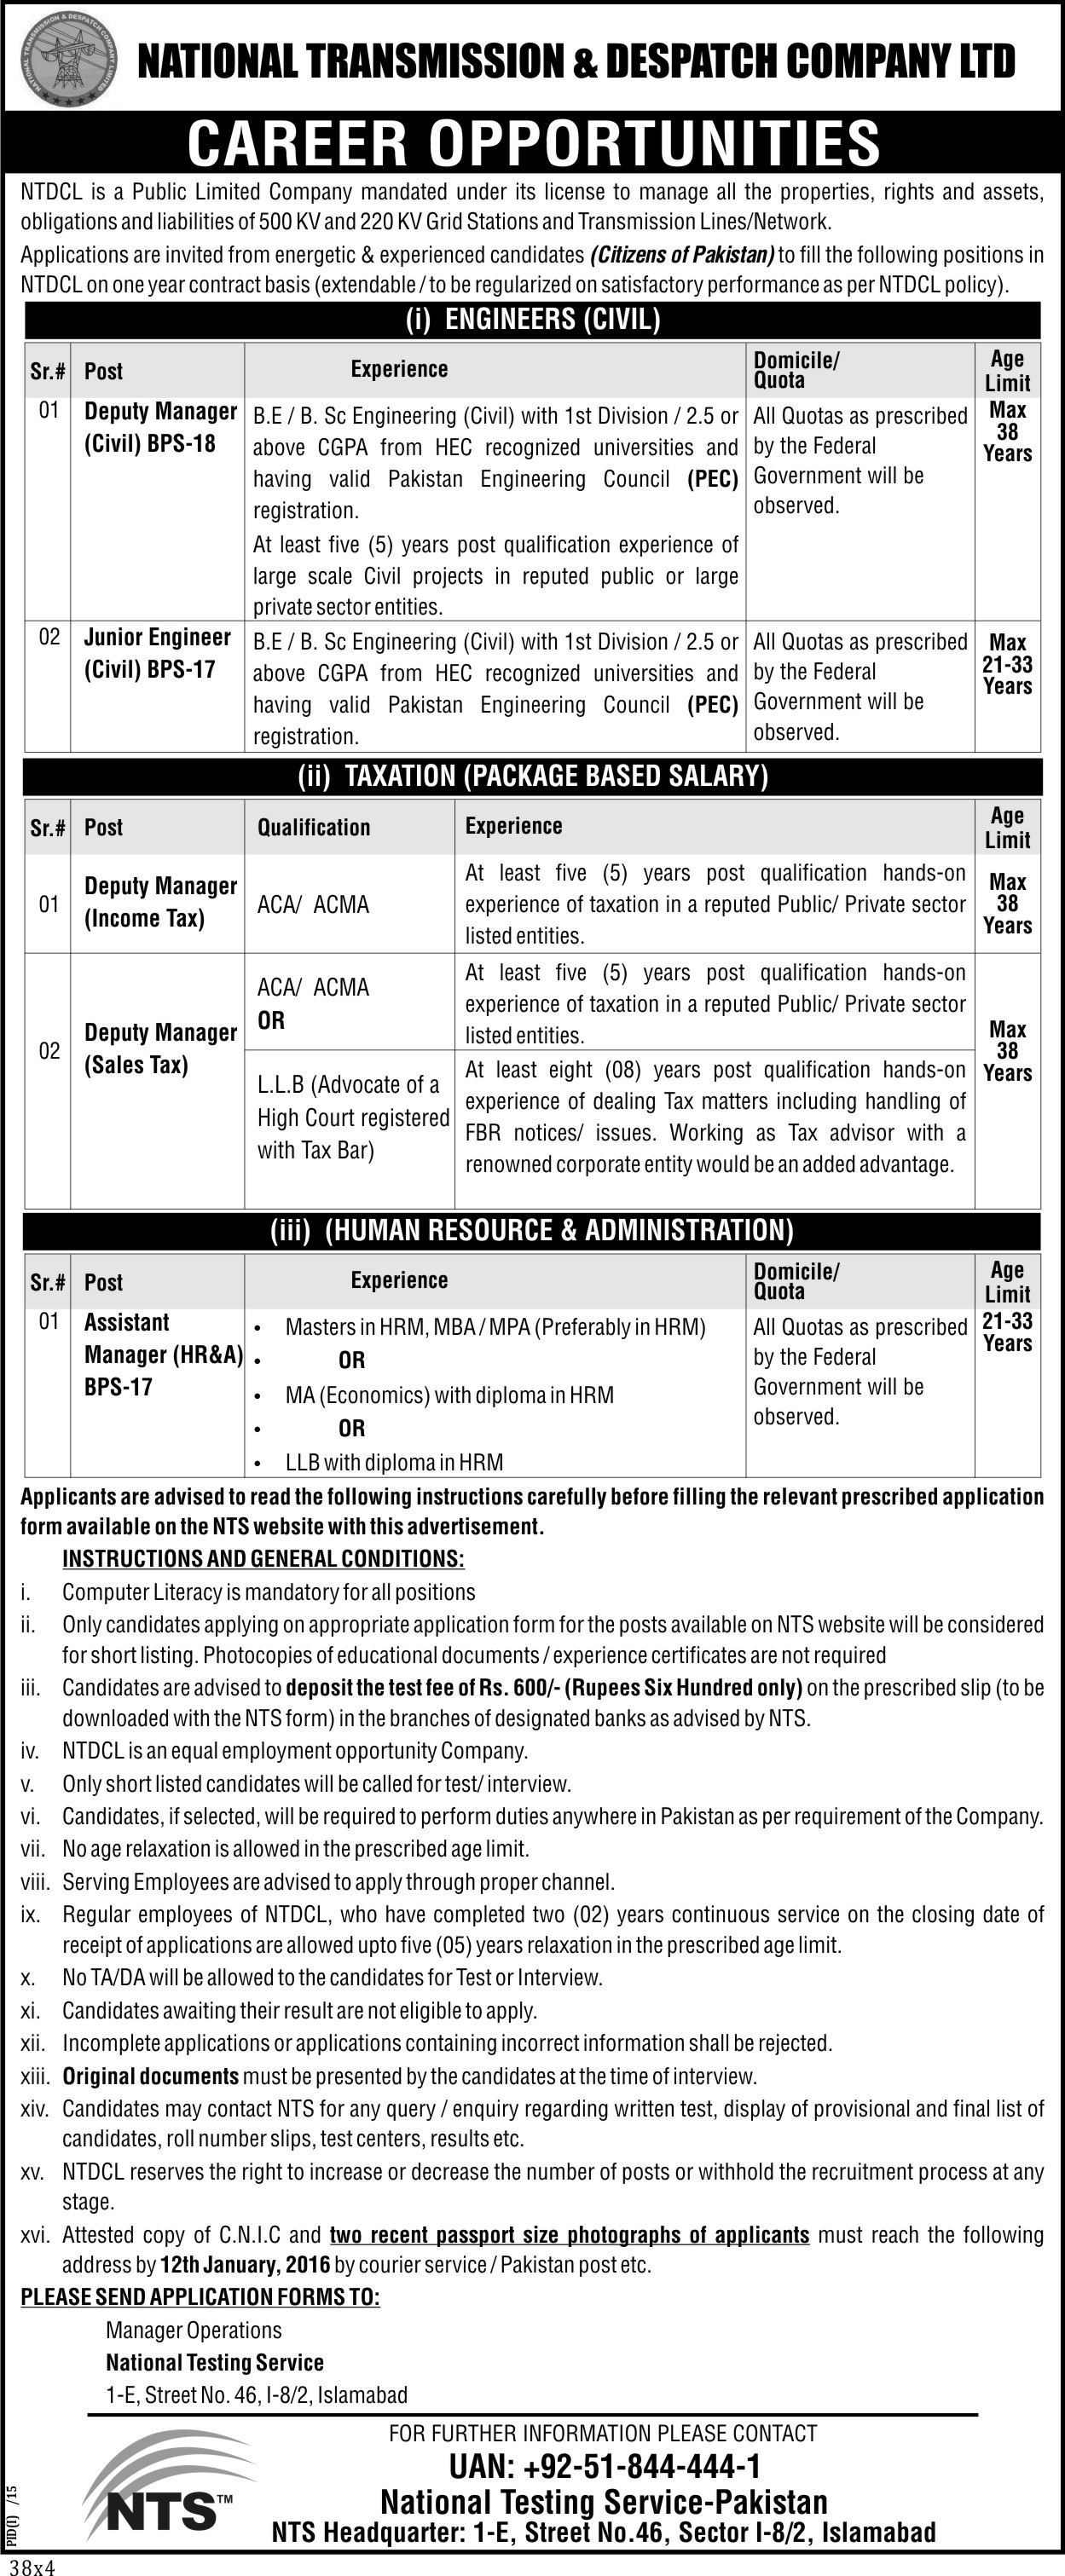 NTDCL Pakistan Jobs 2015 Deputy Manager, Engineer, Assistant NTS Form Date